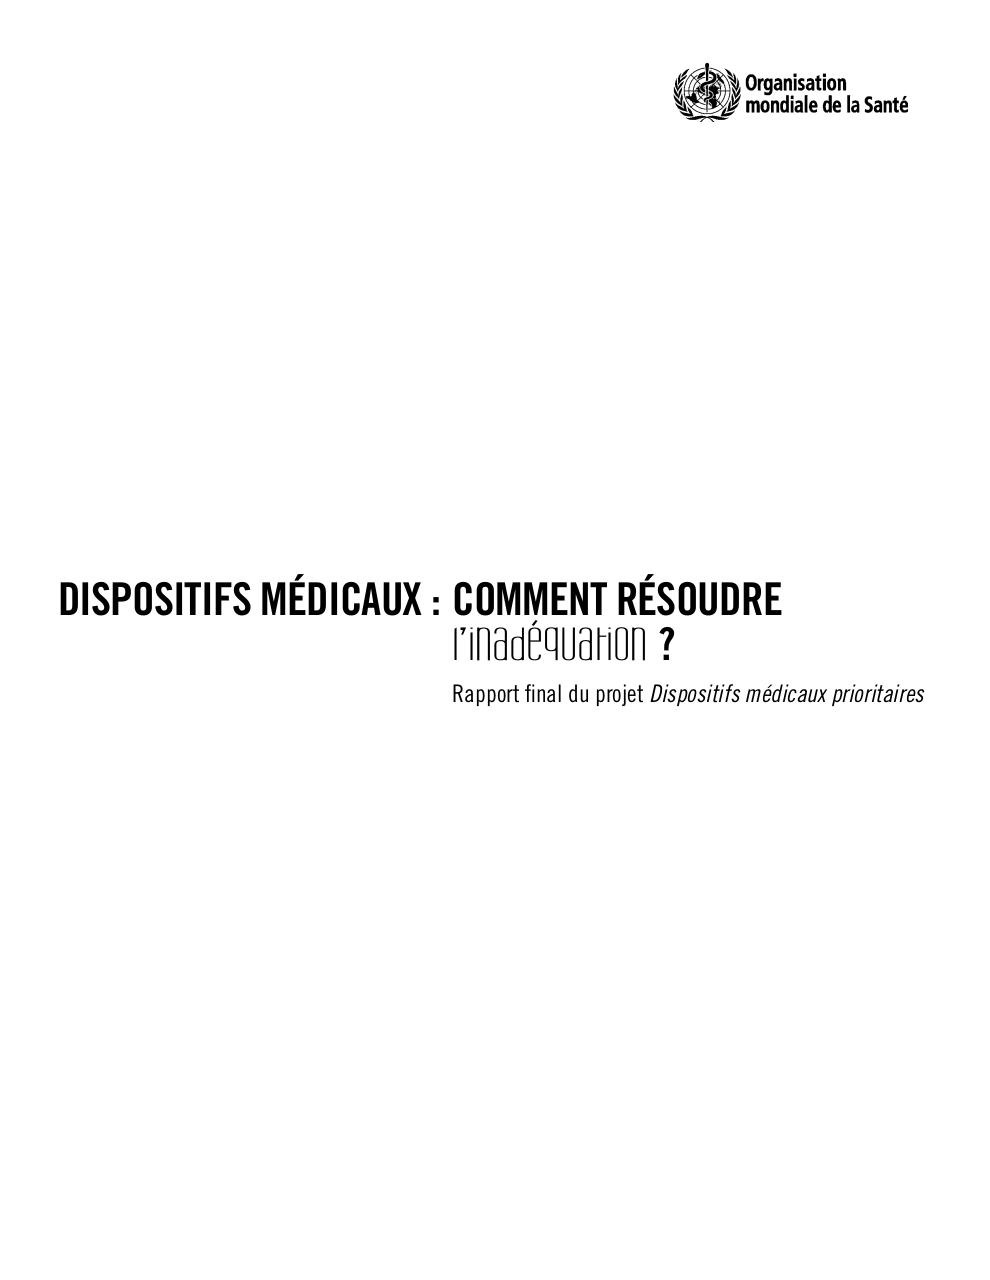 Dispositifs medicaux comment resoudre l'inadequation.pdf - page 3/148